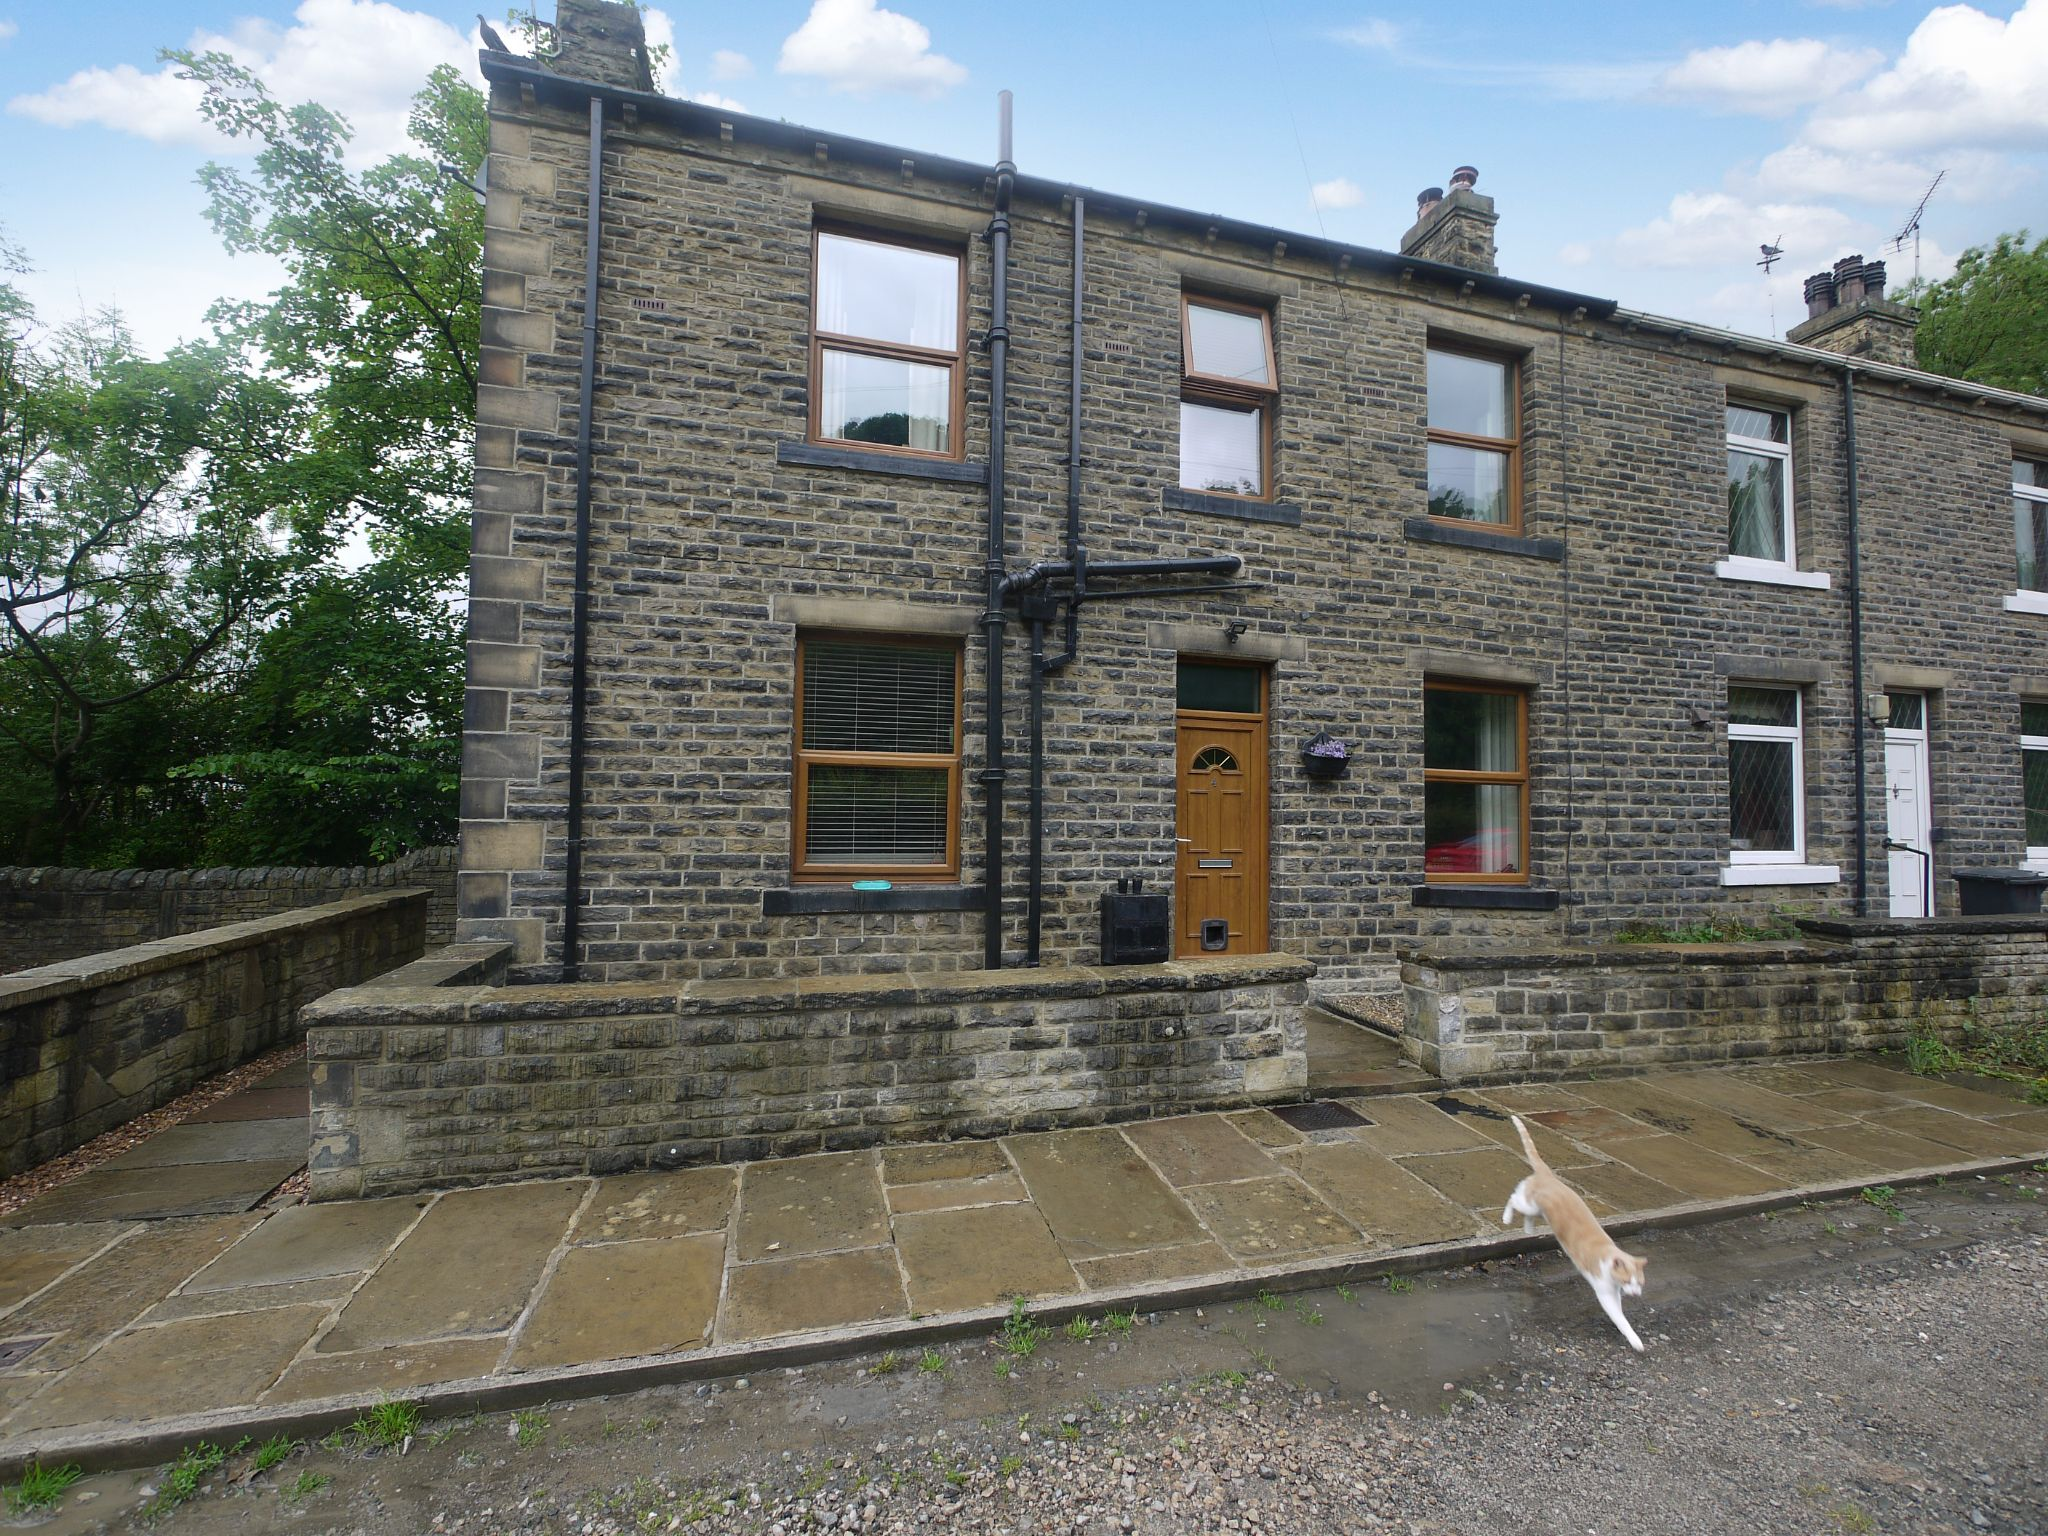 2 bedroom end terraced house SSTC in Brighouse - Main.